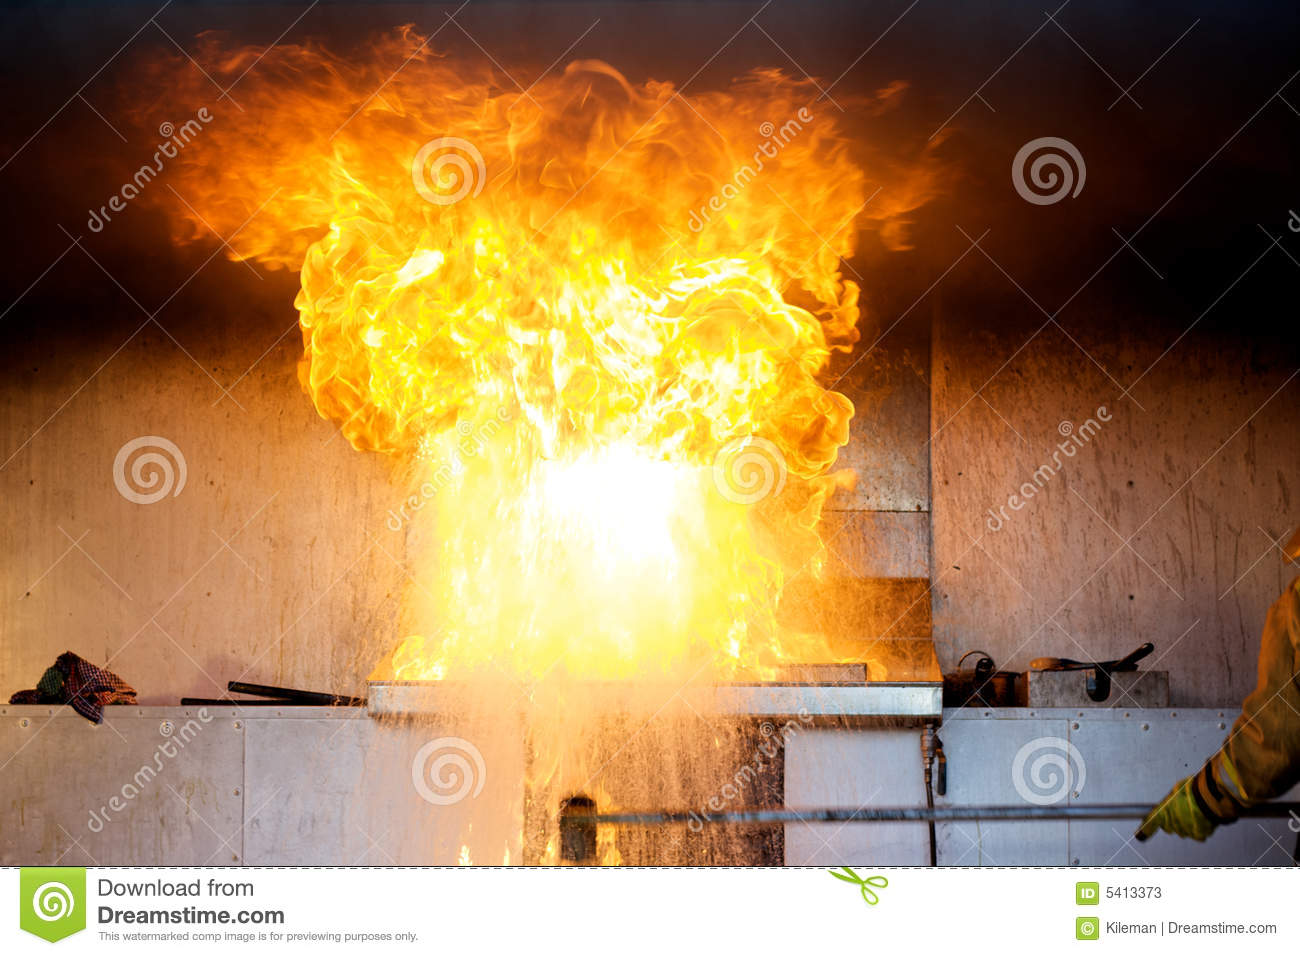 Oil Explosion In A Kitchen Fire Stock Photos  Image 5413373